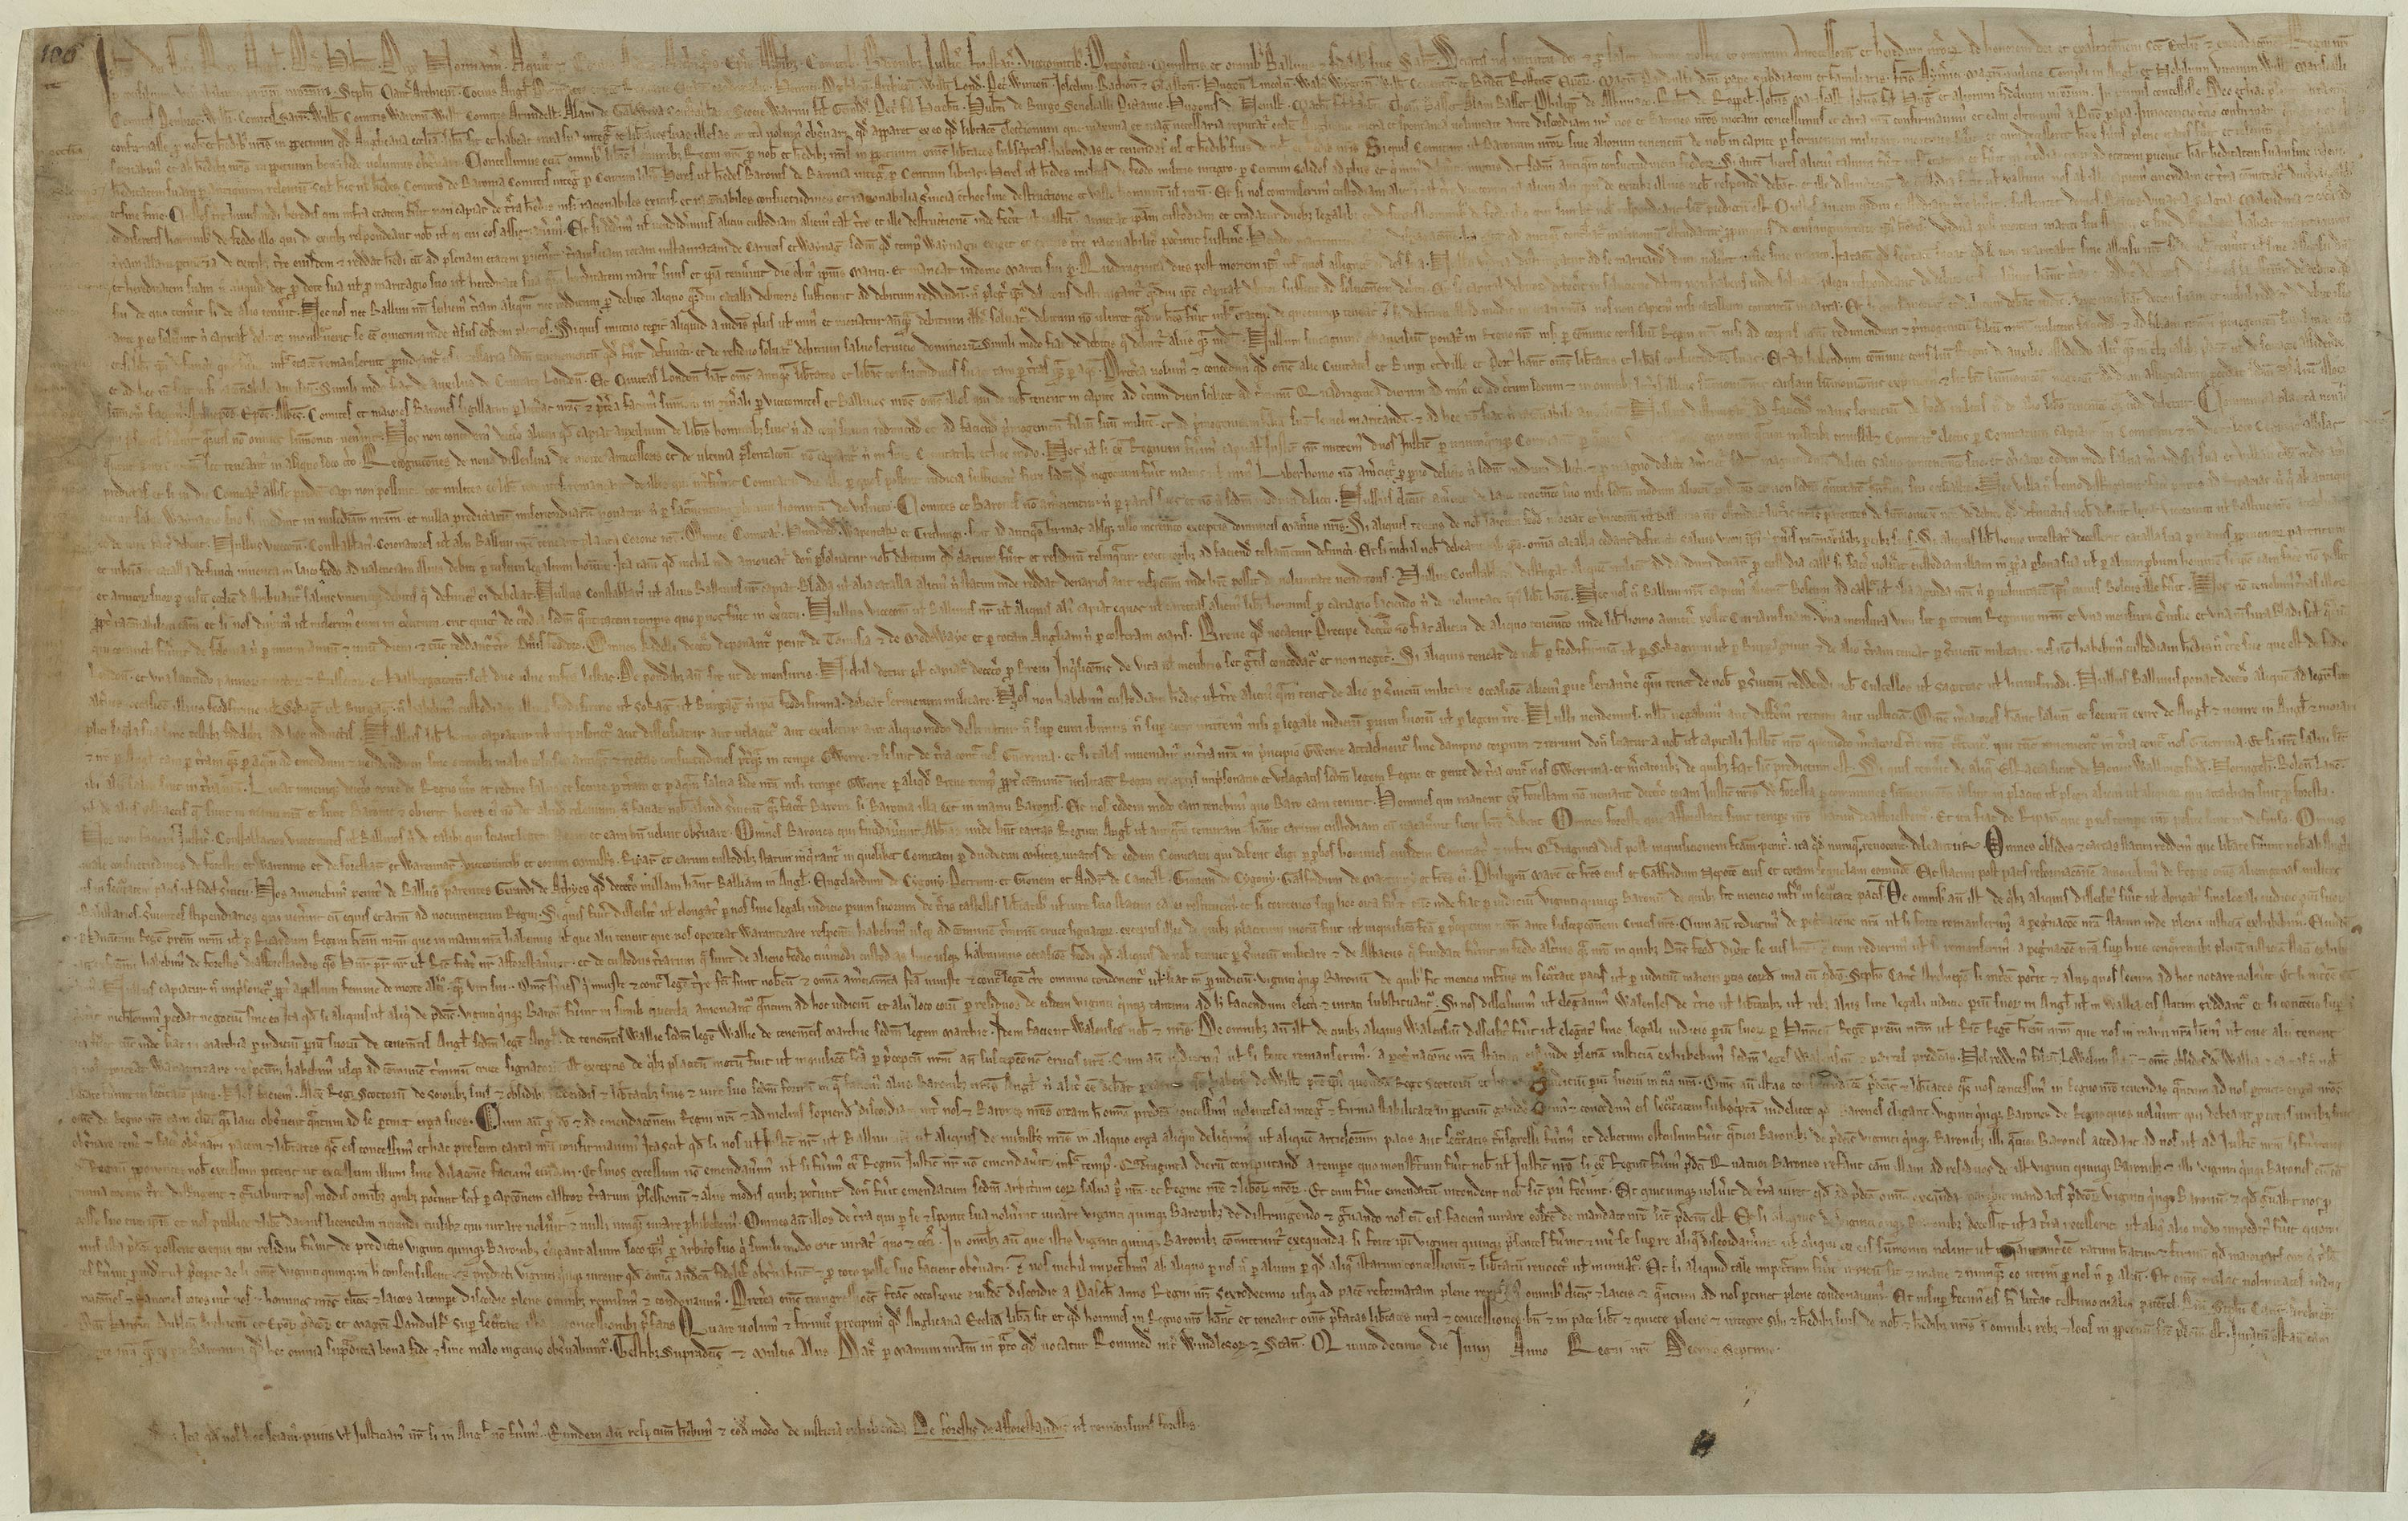 Magna Carta 1215 - original edition - British Library - The British Library